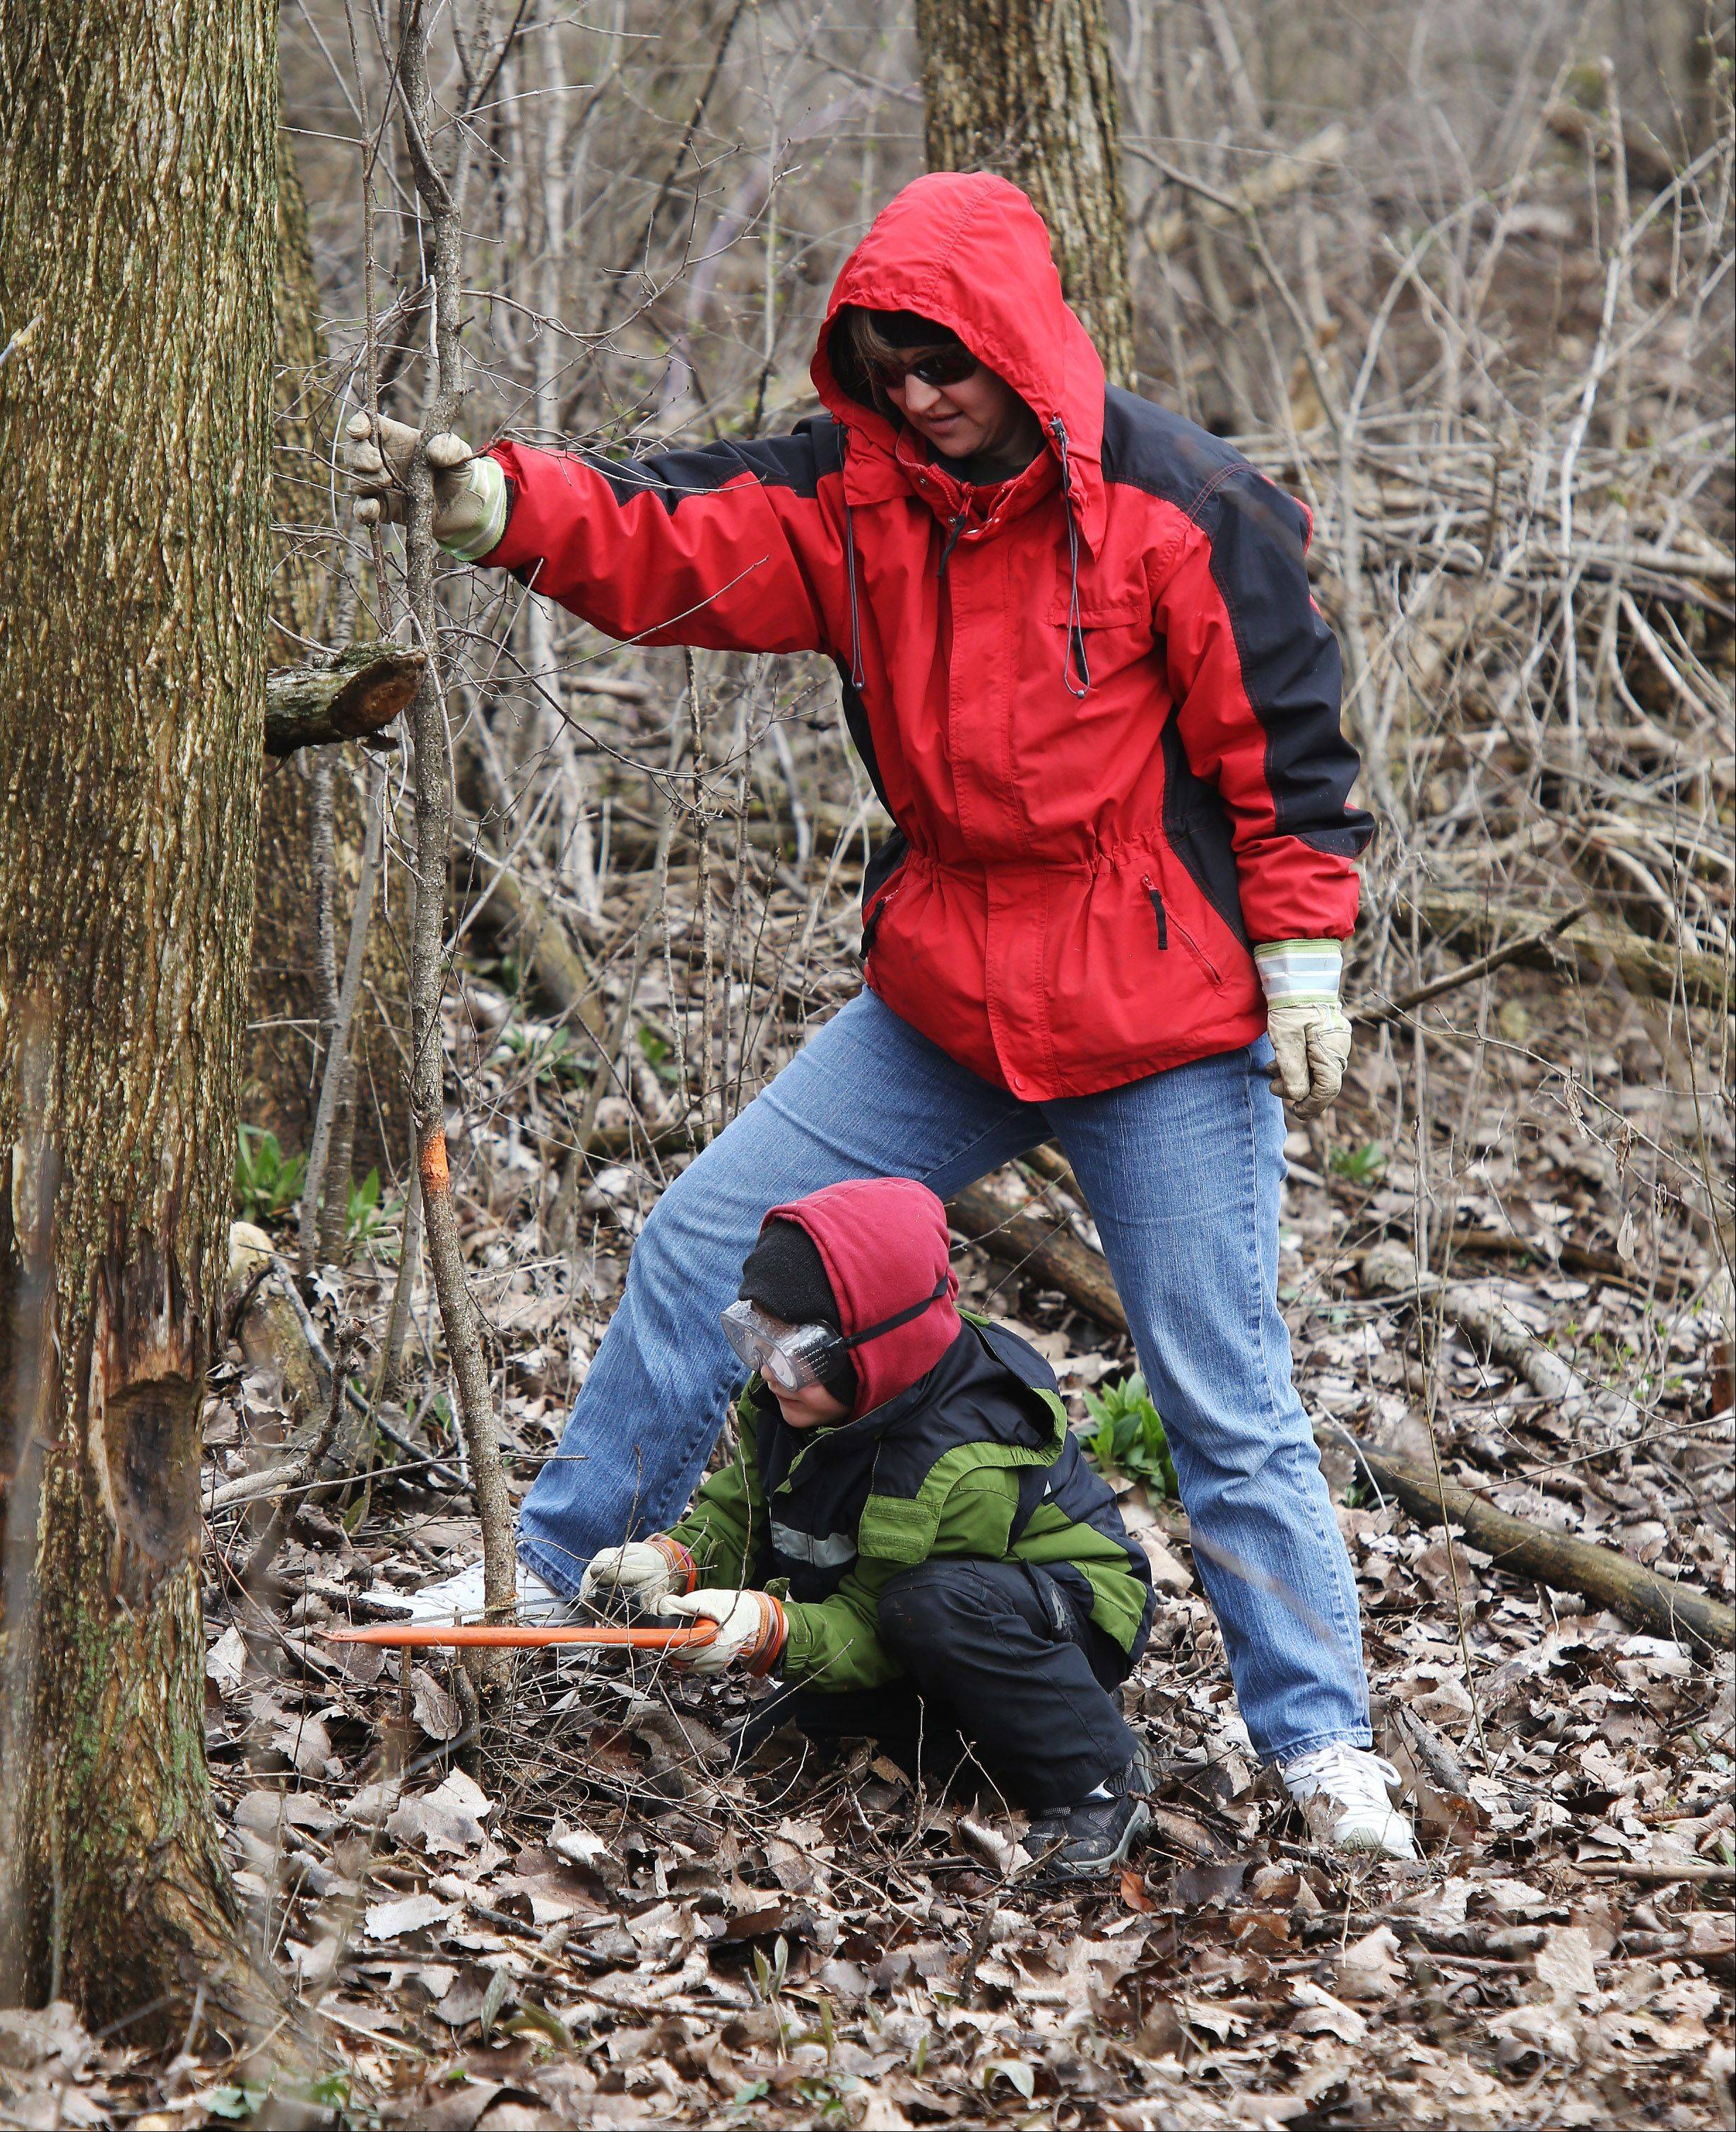 Volunteer Genevieve O'Keefe and her son, Kevin, 7, cut out buckthorn during the Buckthorn Busters program Wednesday at Independence Grove near Libertyville. The Earth Week event was conducted by the Lake County Forest Preserve.